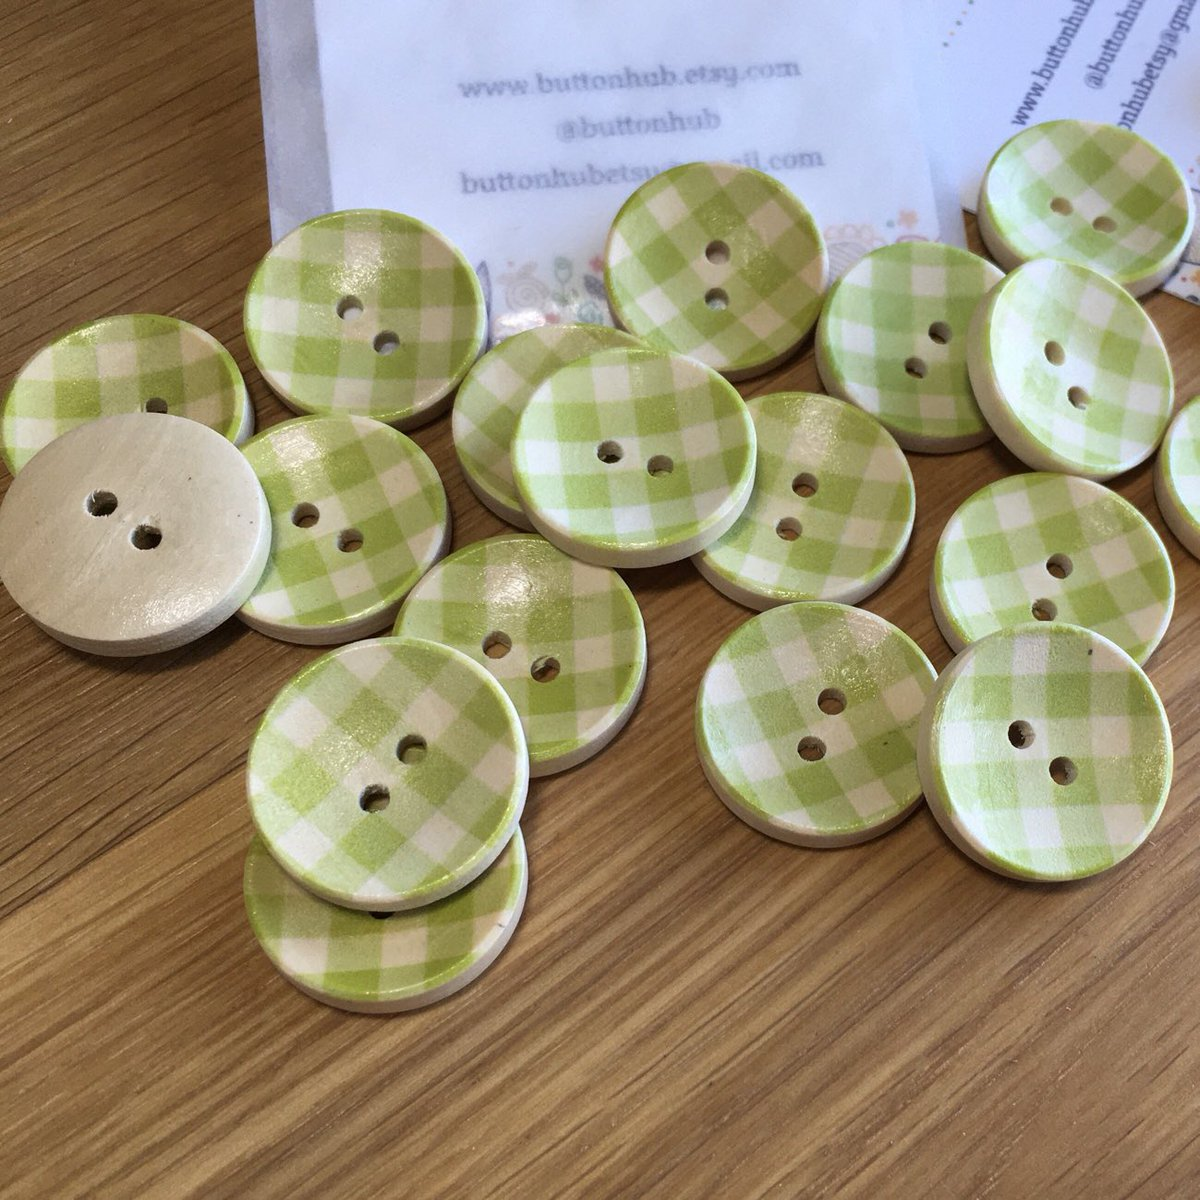 🧵 Green Gingham Buttons: Packs of 8 buttons #gingham #schooluniform #green #buttons #etsy #etsyuk #sewing #knitting #crochet